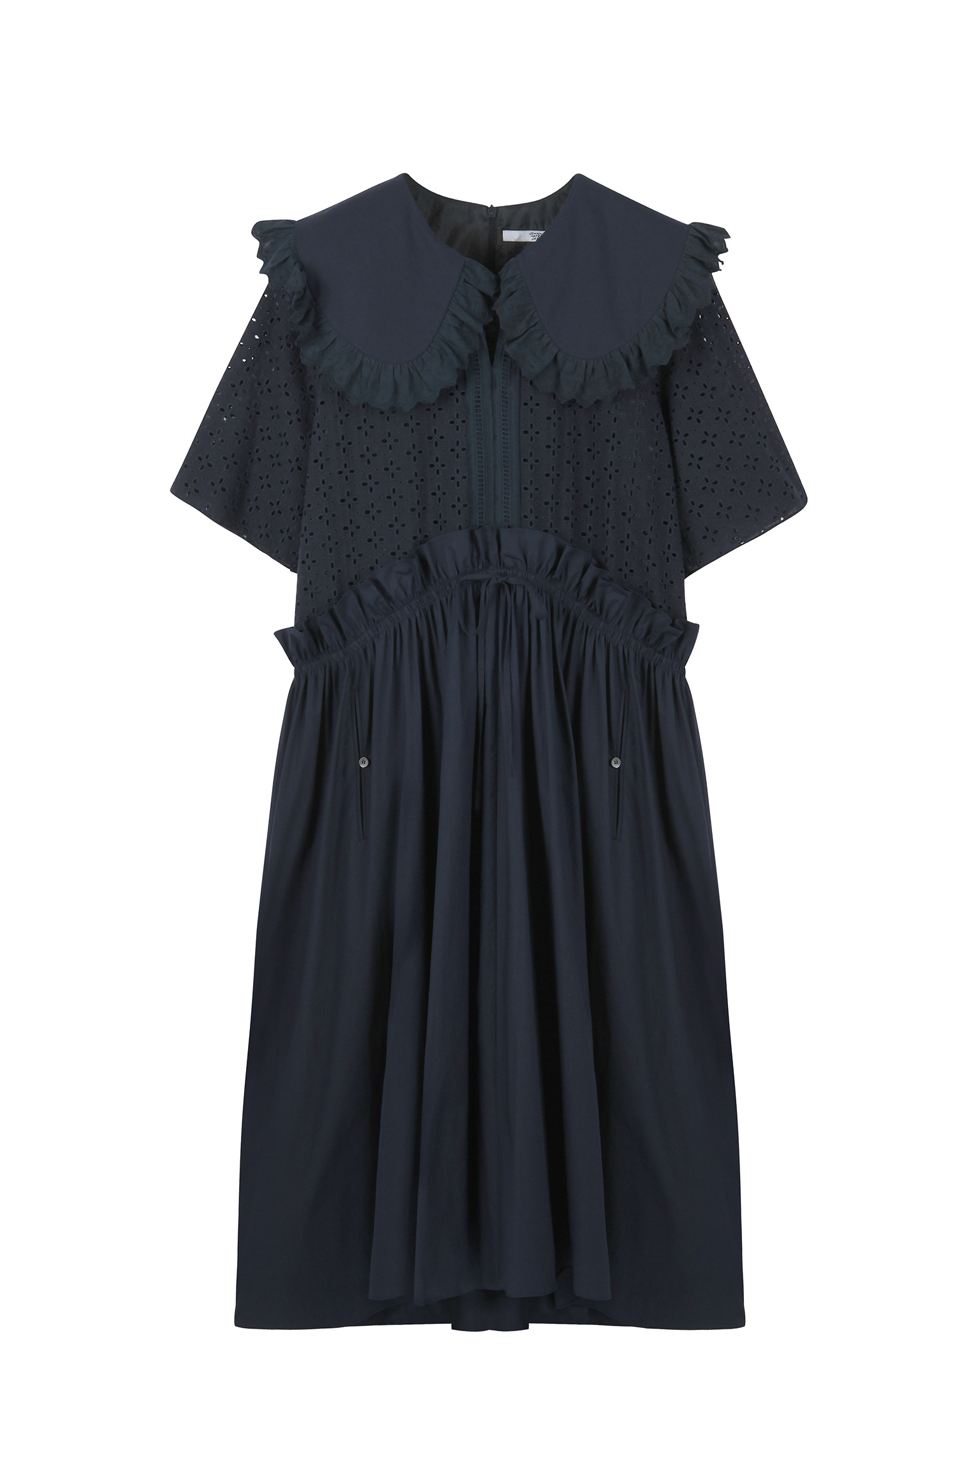 OVERSIZED BRODERIE DRESS - NAVY